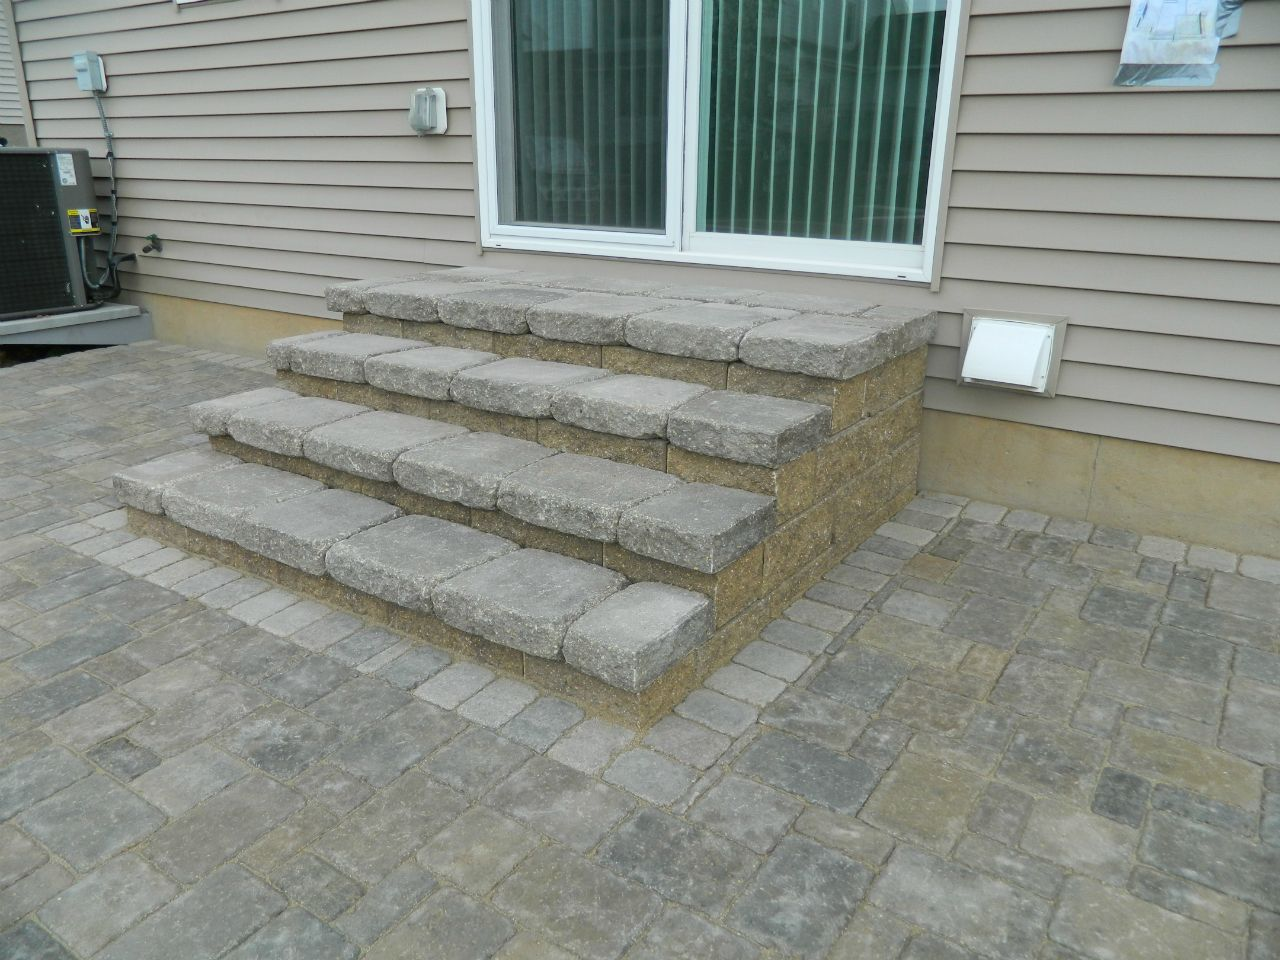 Cinder Block Stairs More Paver Stairs Temporary Solution On The Cheap Landscaping